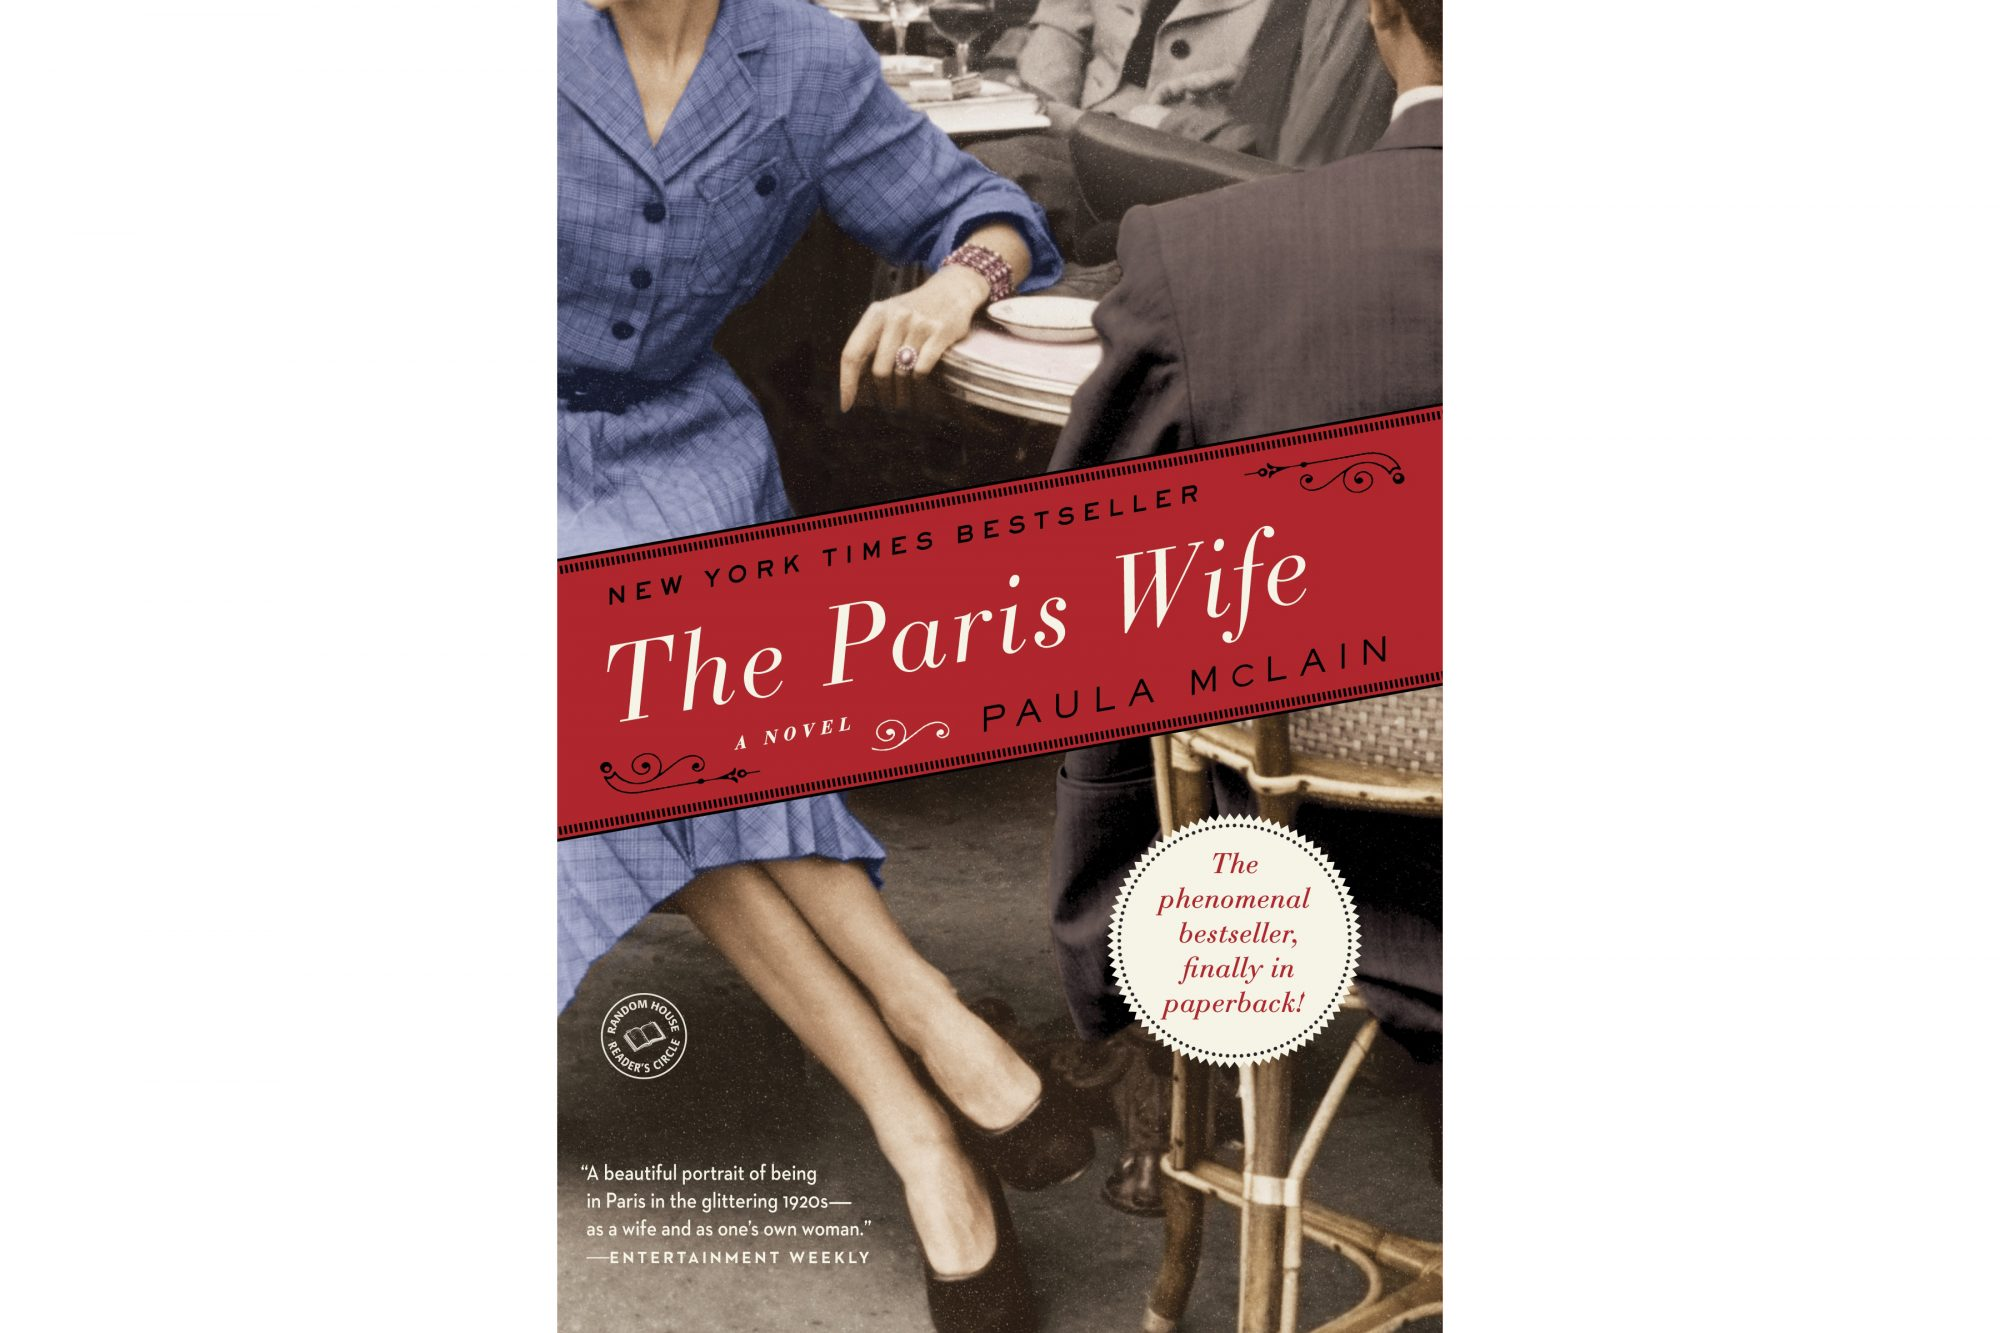 The Paris Wife by Paula McClain (Books to read sooner)